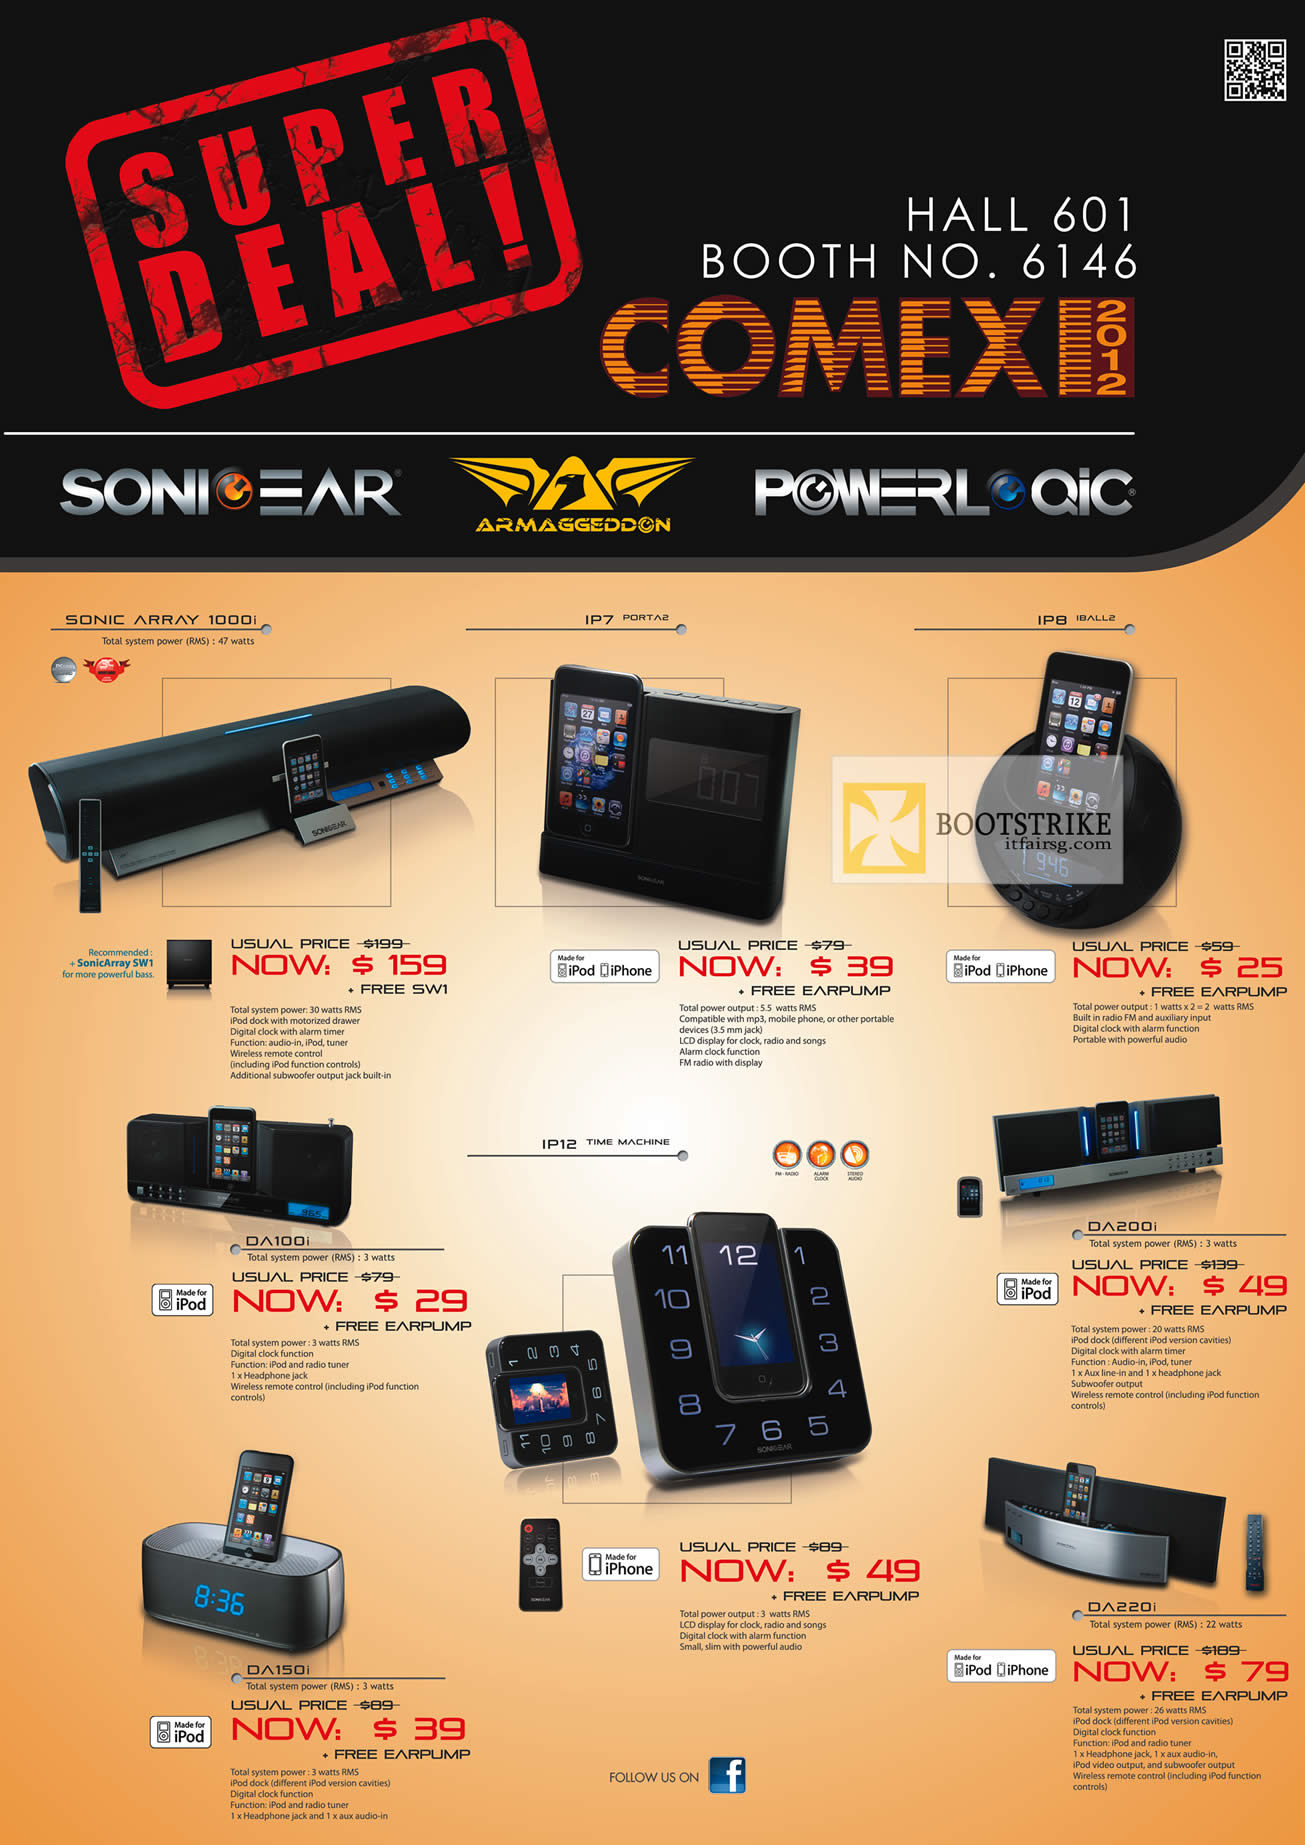 COMEX 2012 price list image brochure of Leap Frog Sonicgear Powerlogic Armaggeddon Speakers, Docking Stations, Sonic Array 1000i, IP7, IP8, DA100i, IP12, DA200i, DA150i, DA220i